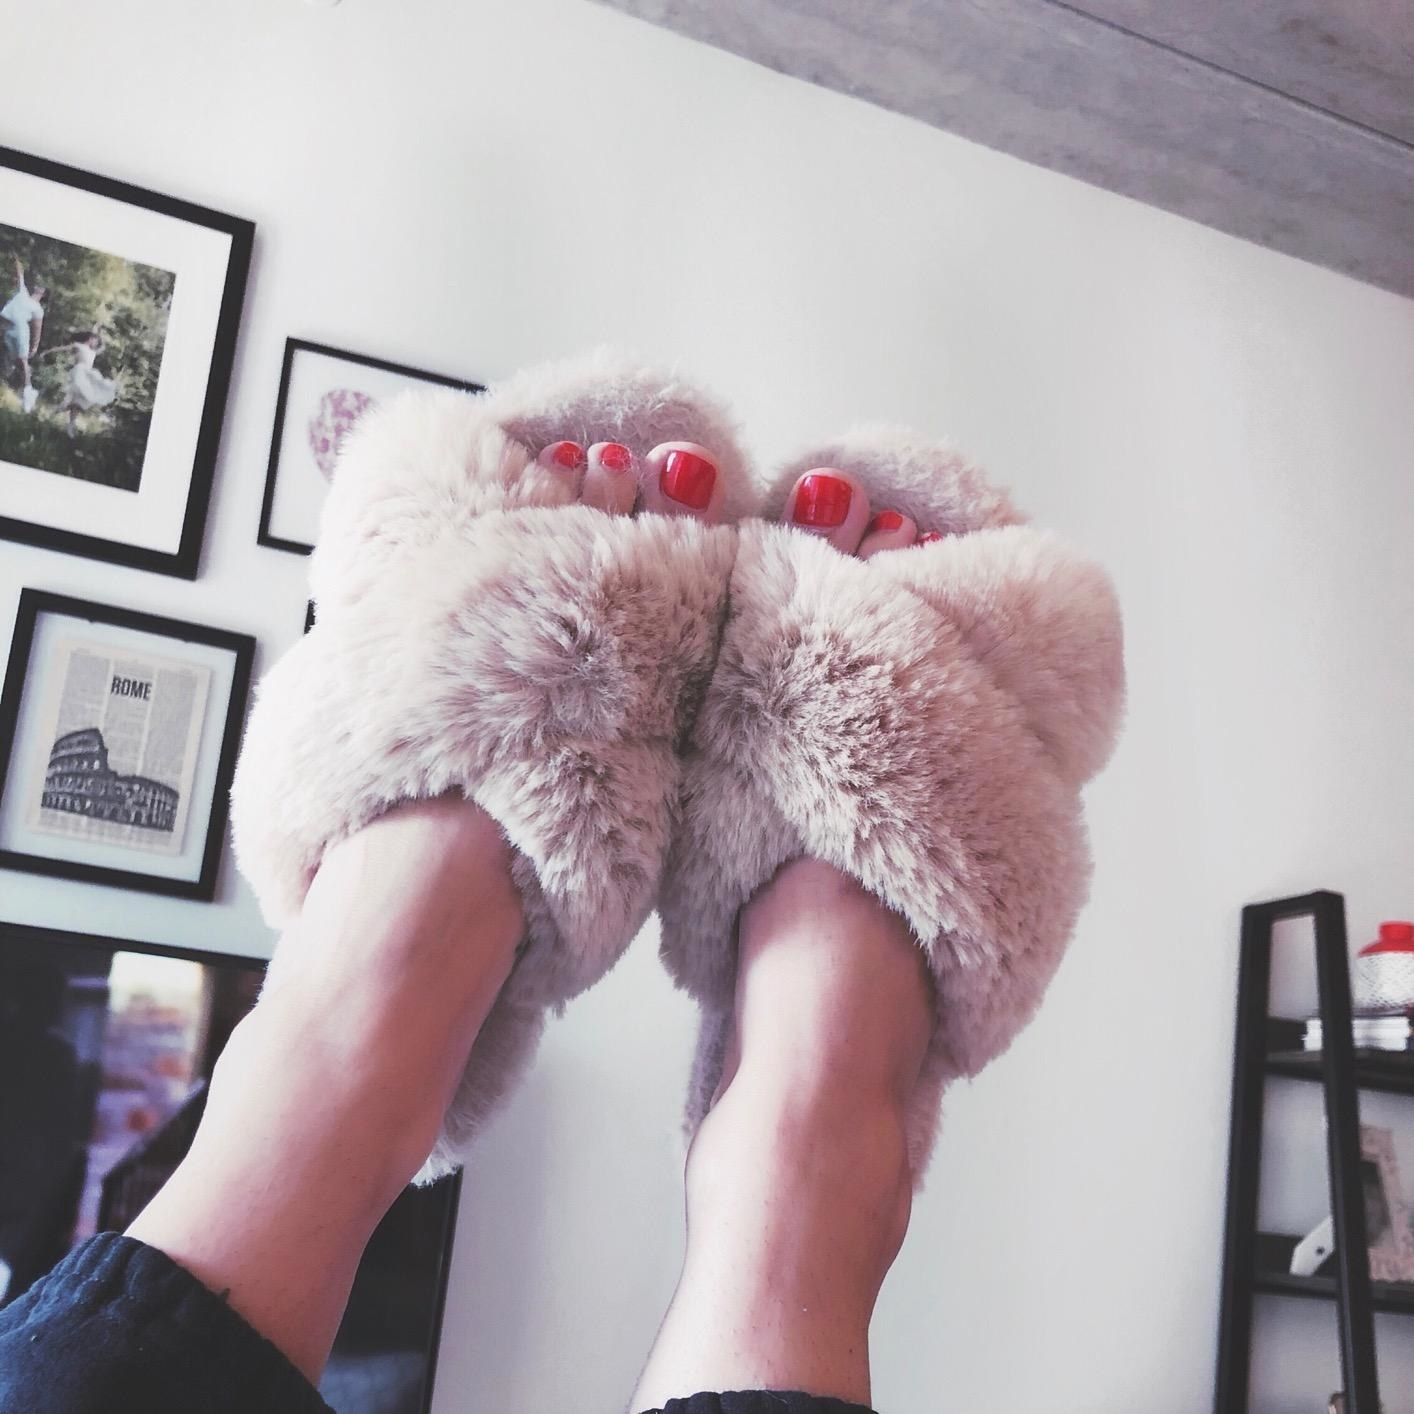 Reviewer pic of their feet in the air with the fuzzy slippers on with a criss-cross over the top of the foot and an open-toe style in light pink